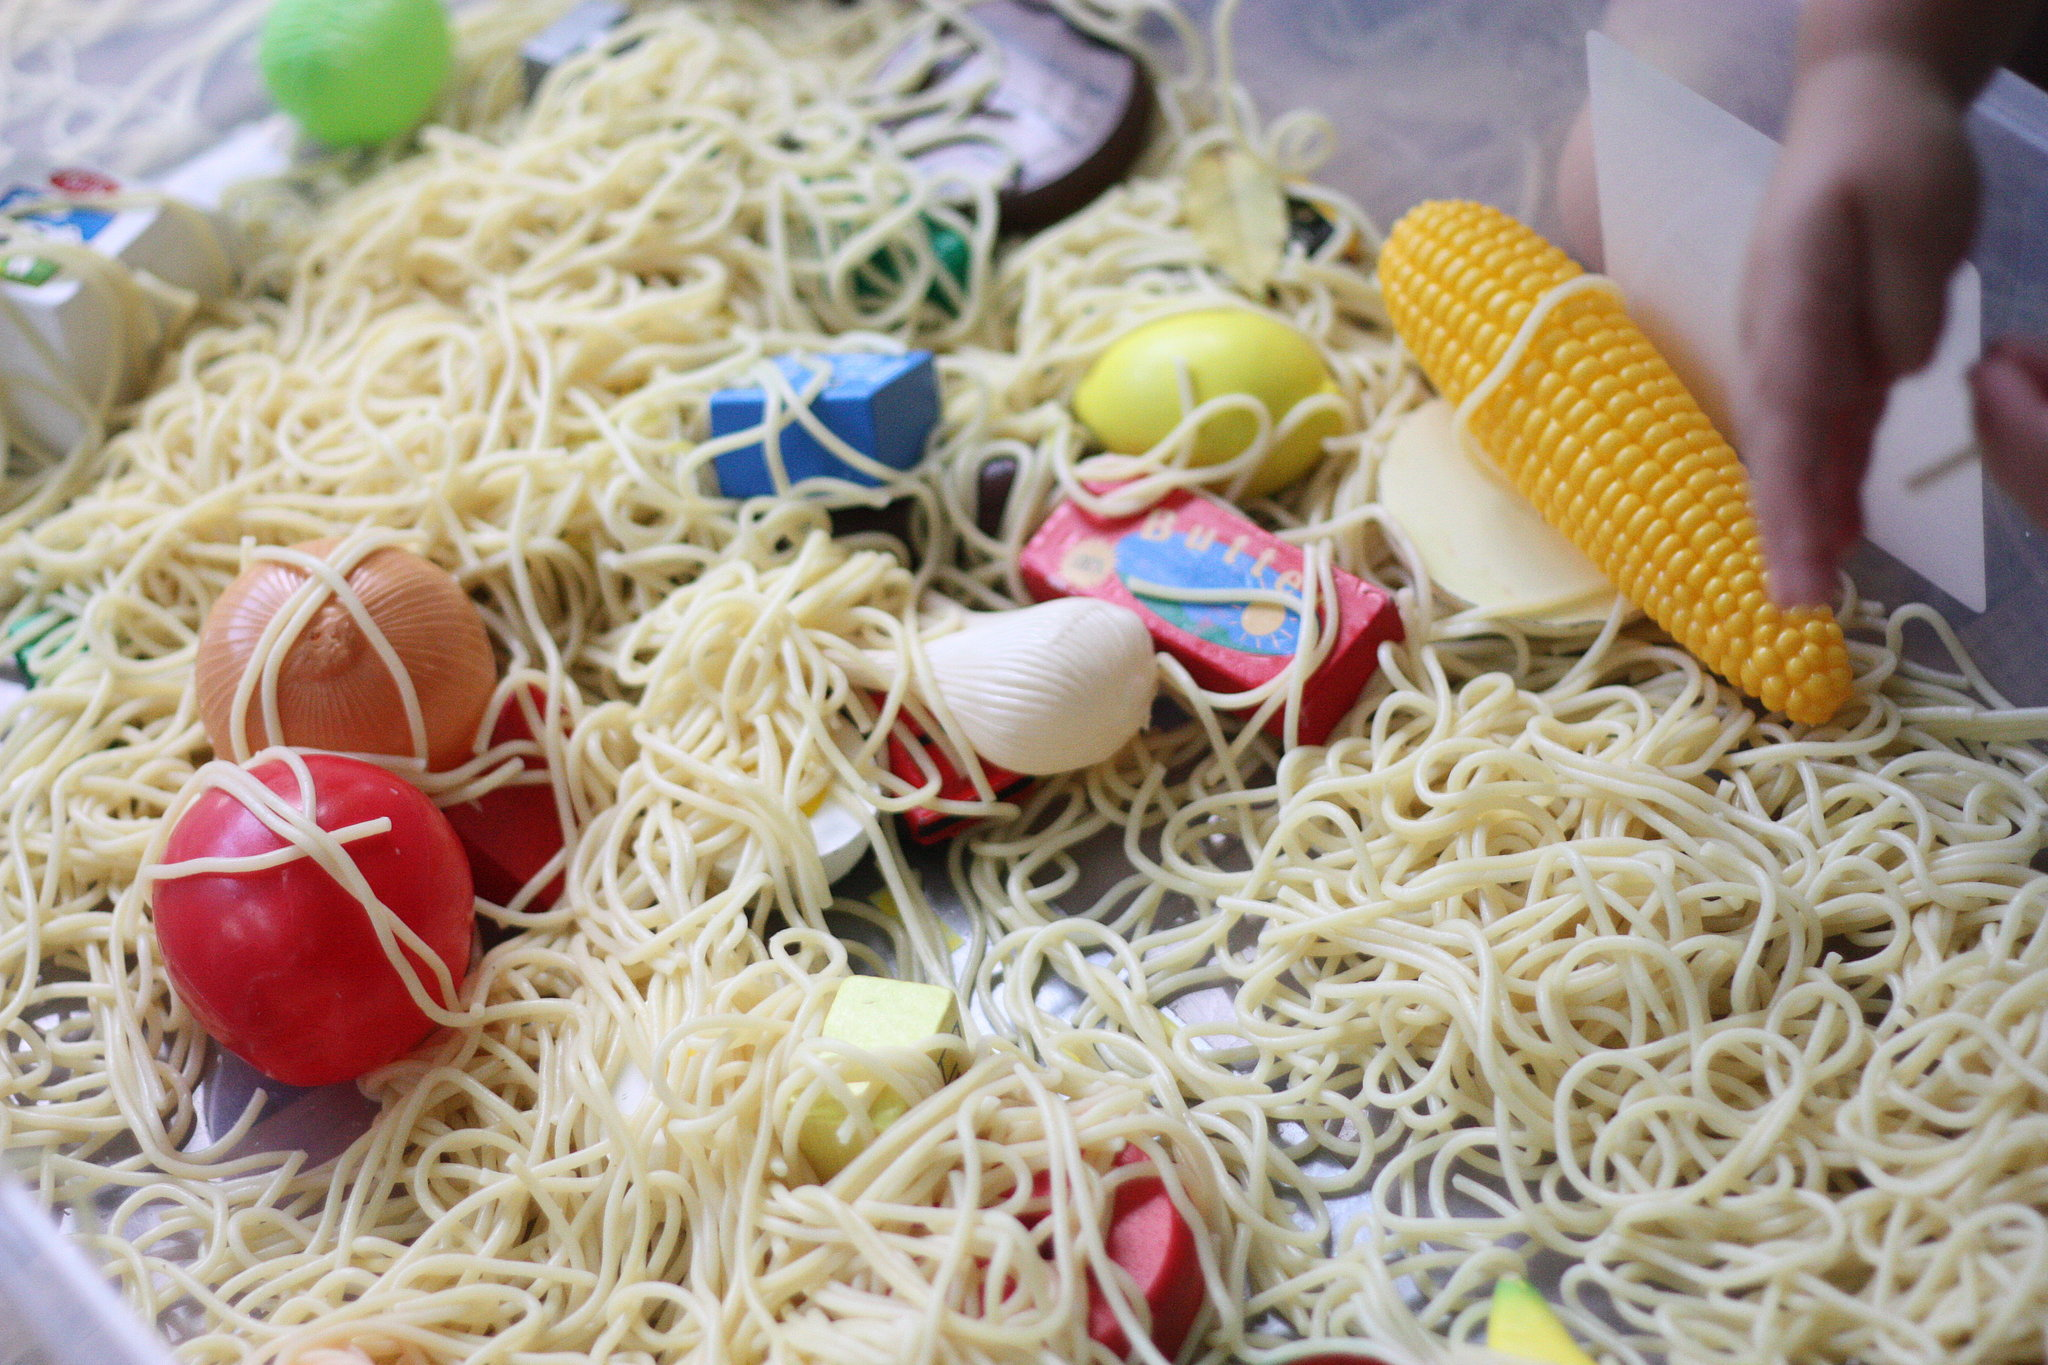 Cloudy With a Chance of Meatballs Sensory Bin